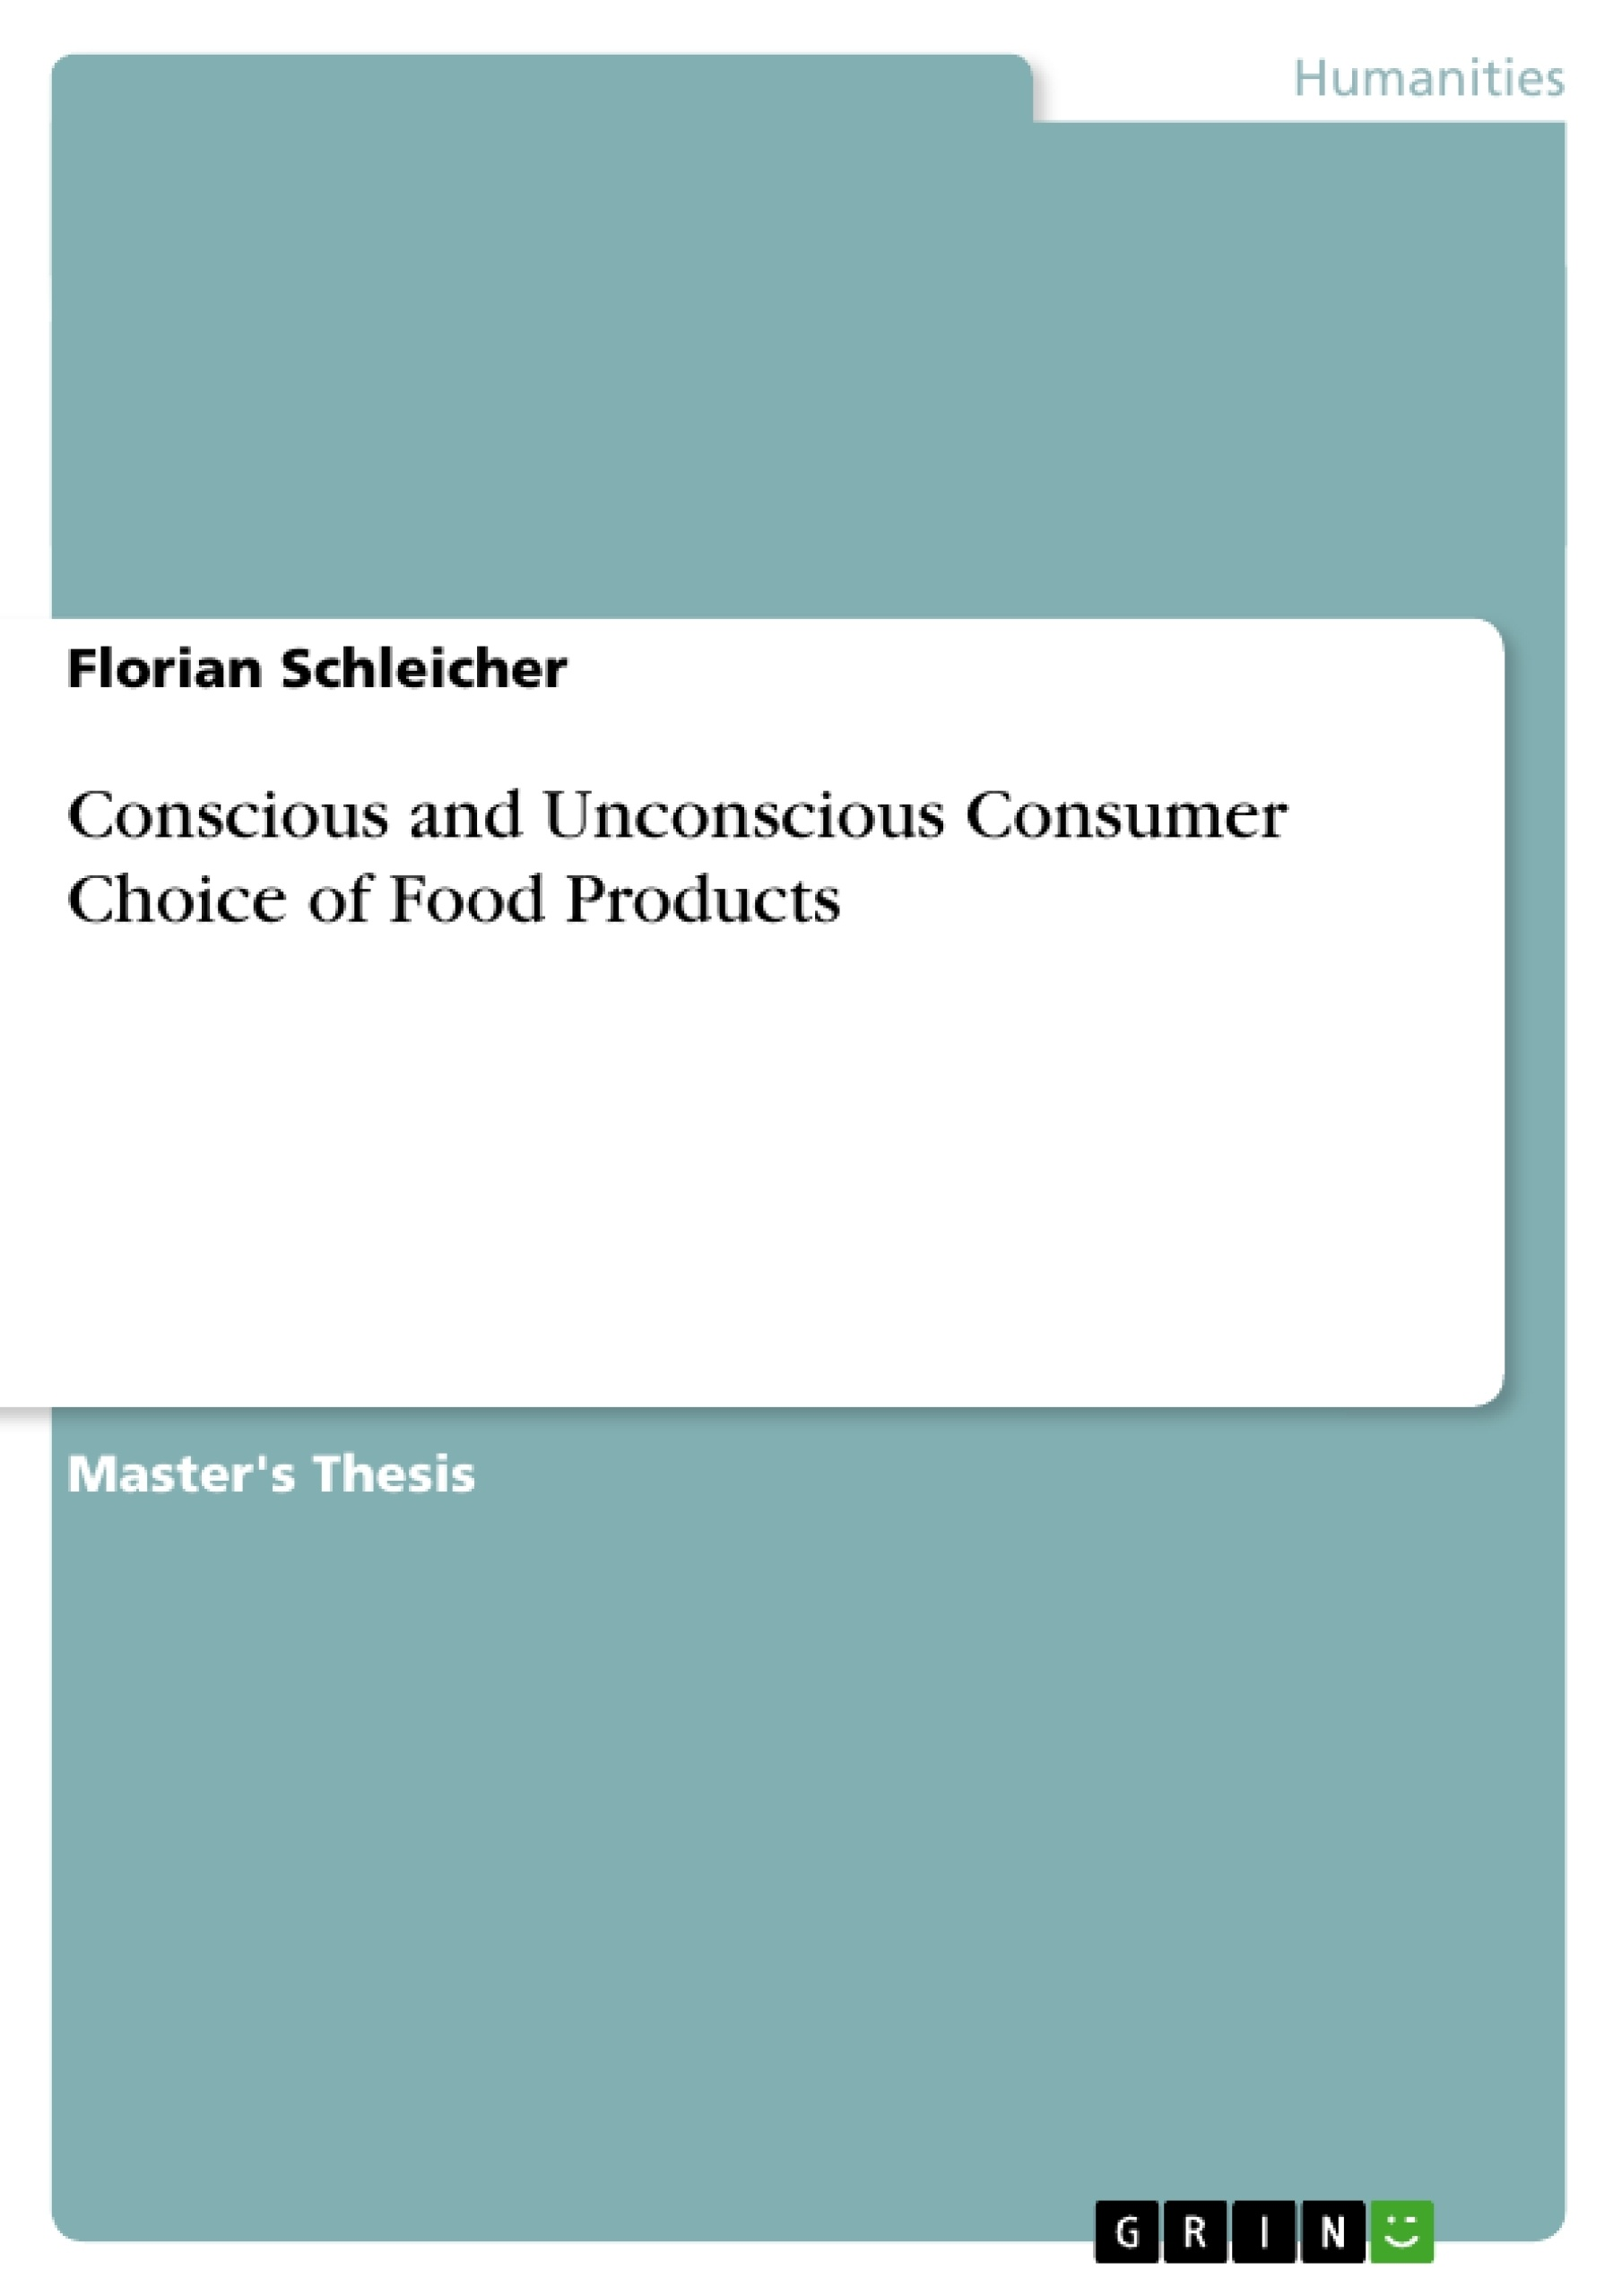 Title: Conscious and Unconscious Consumer Choice of Food Products